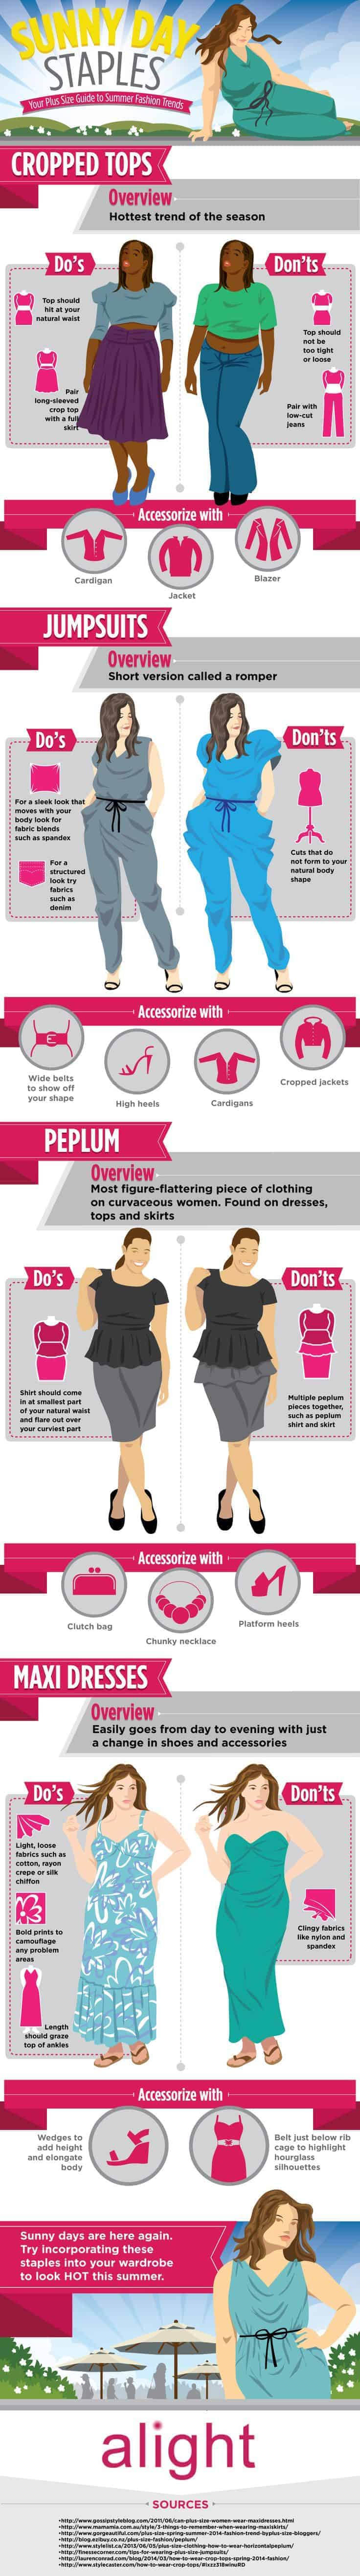 plus size summer clothing trends infographic